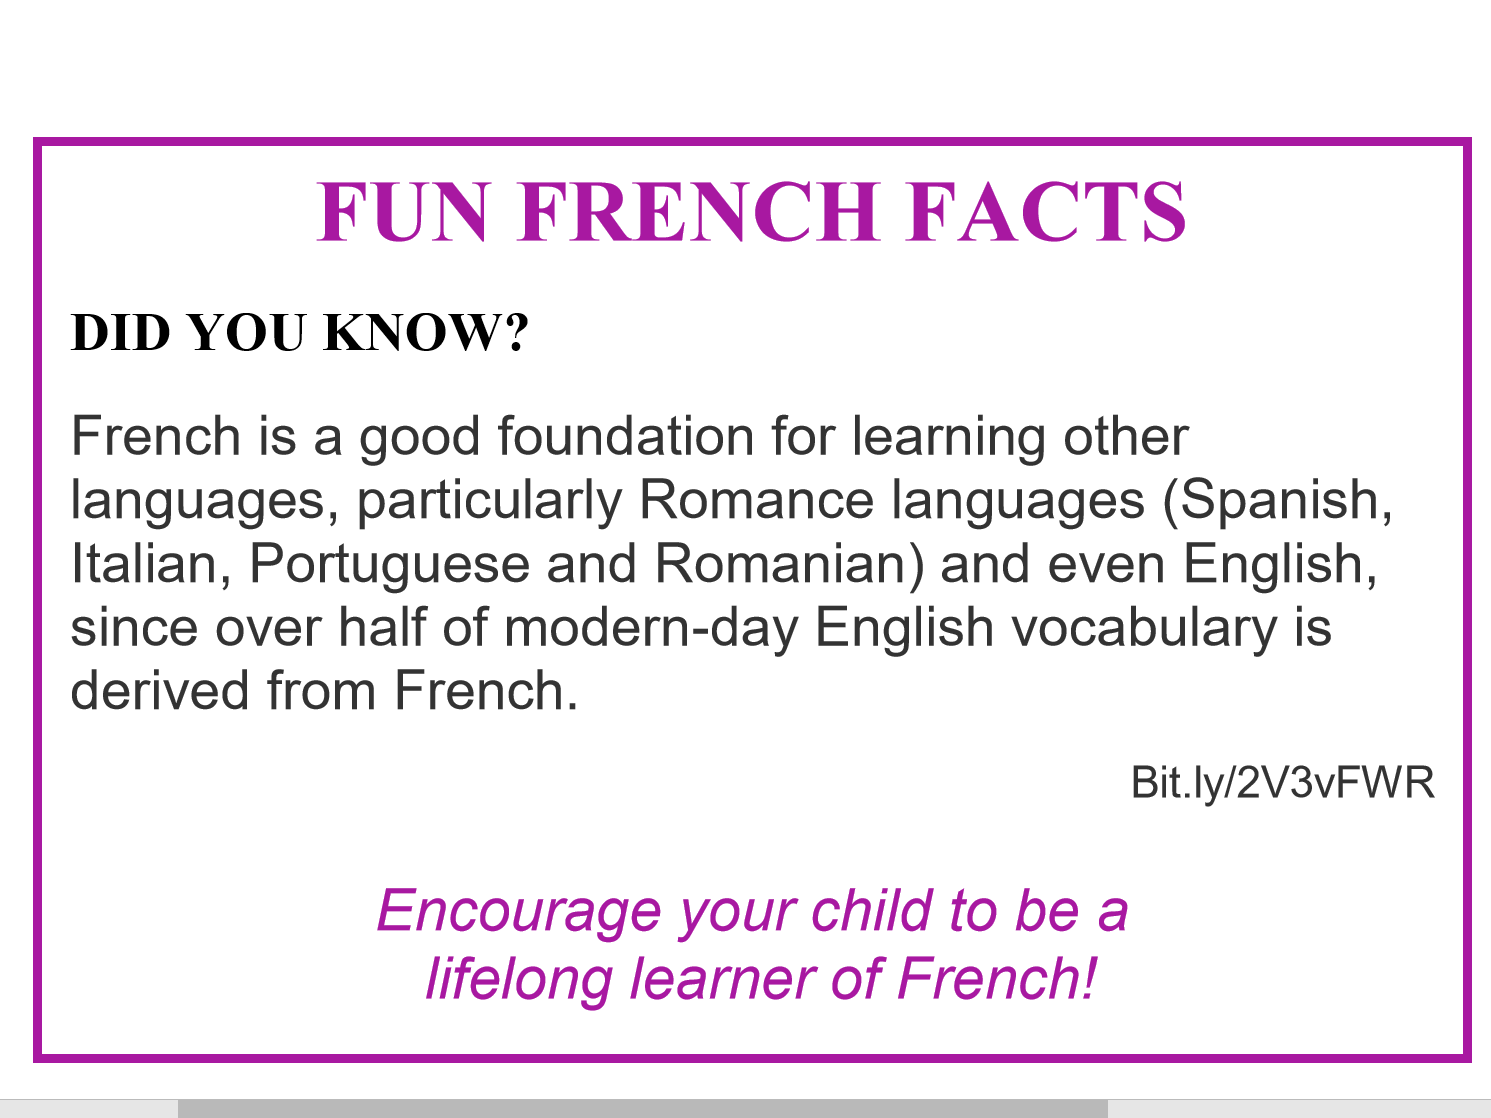 Revised Fun French Fact May 2019.png